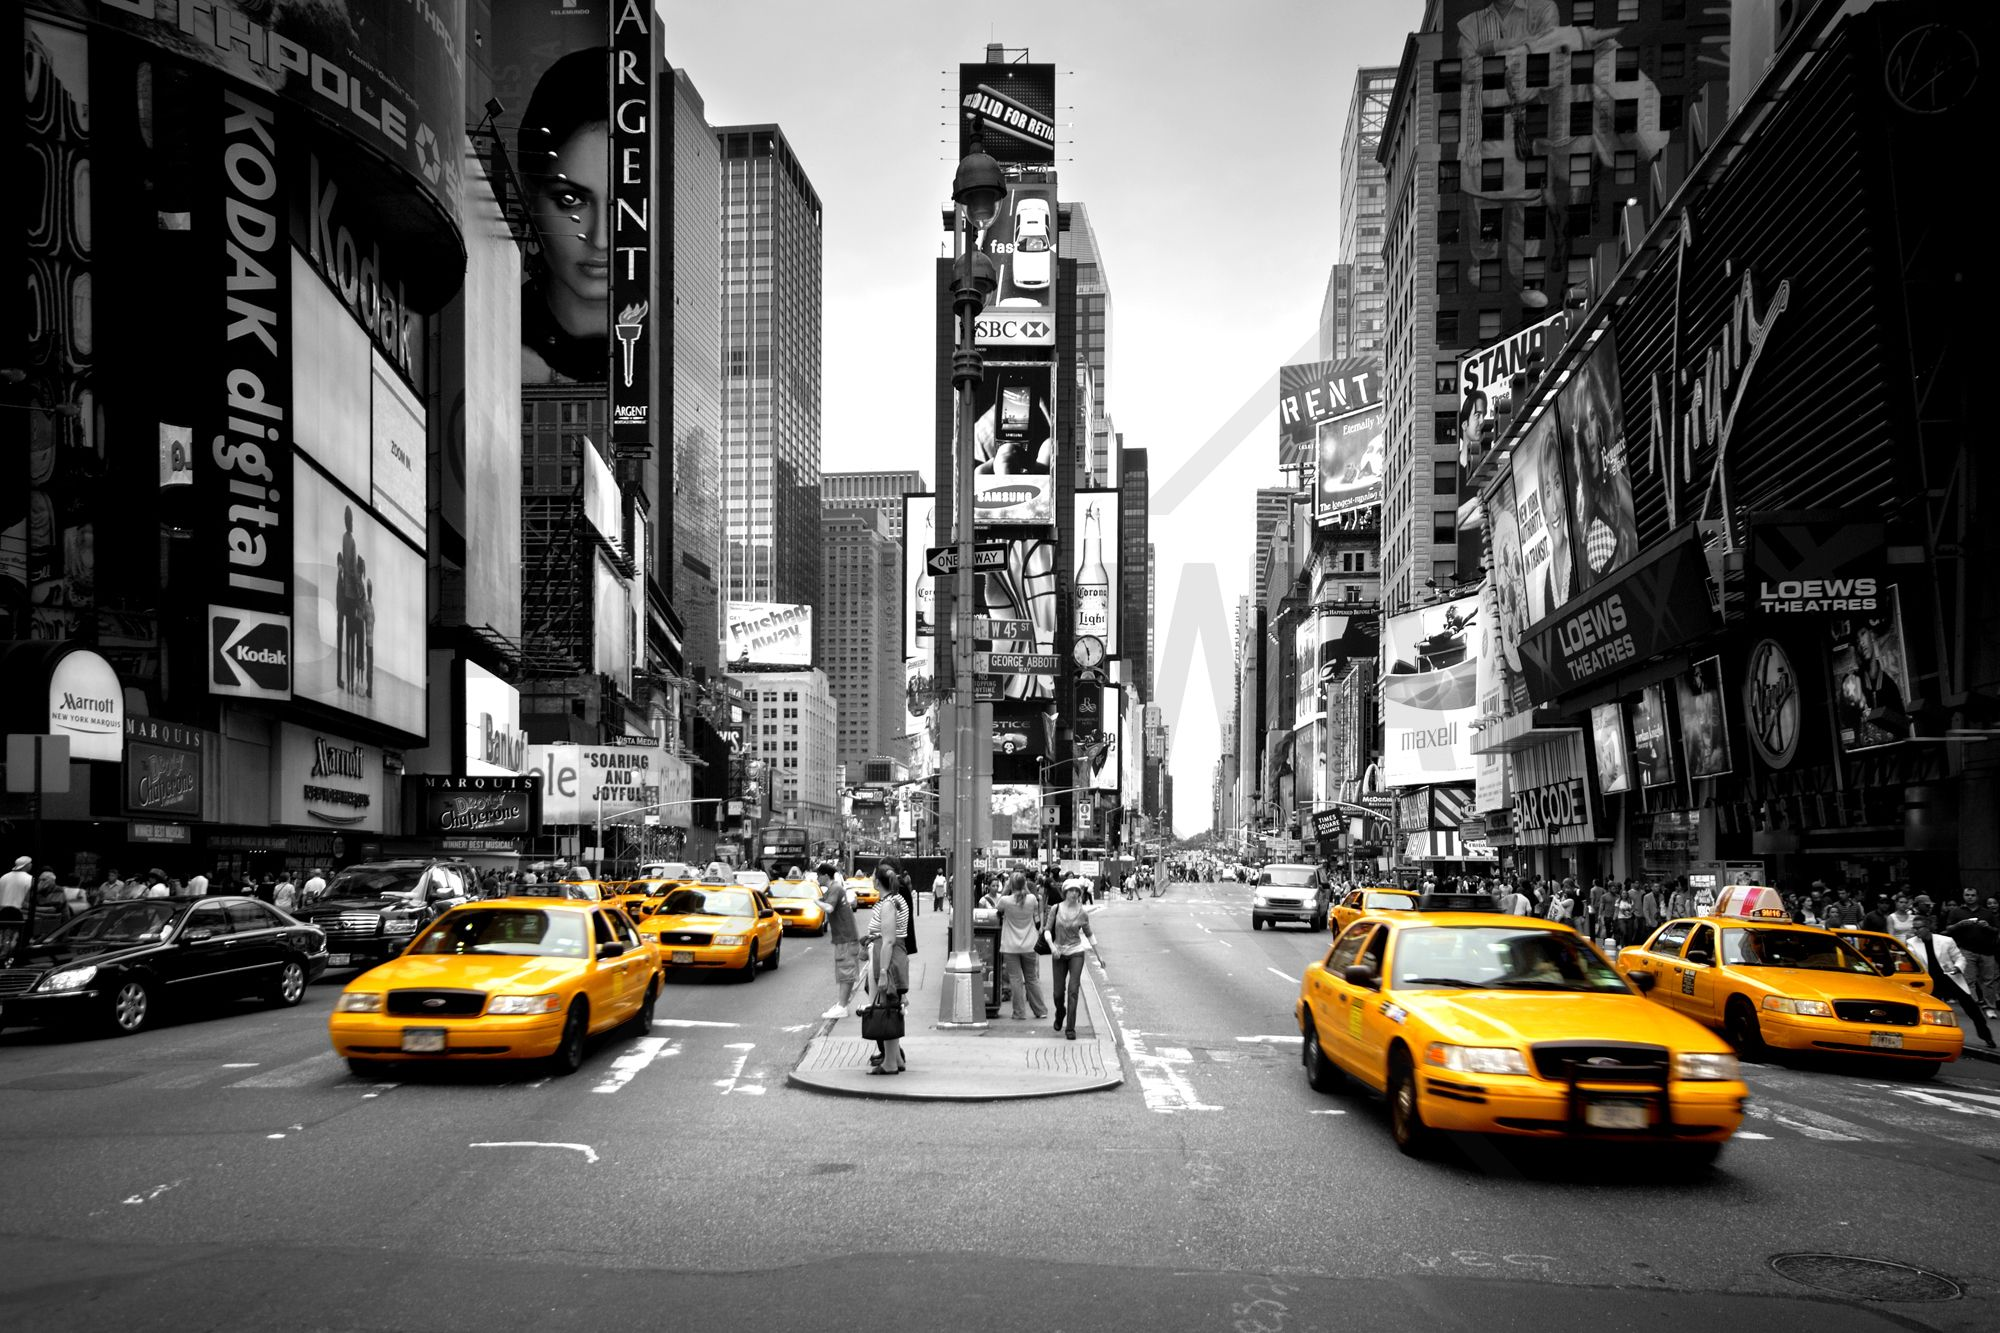 New York Wallpaper For Bedrooms Times Square Cabs Colorsplash Wall Mural Photo Wallpaper